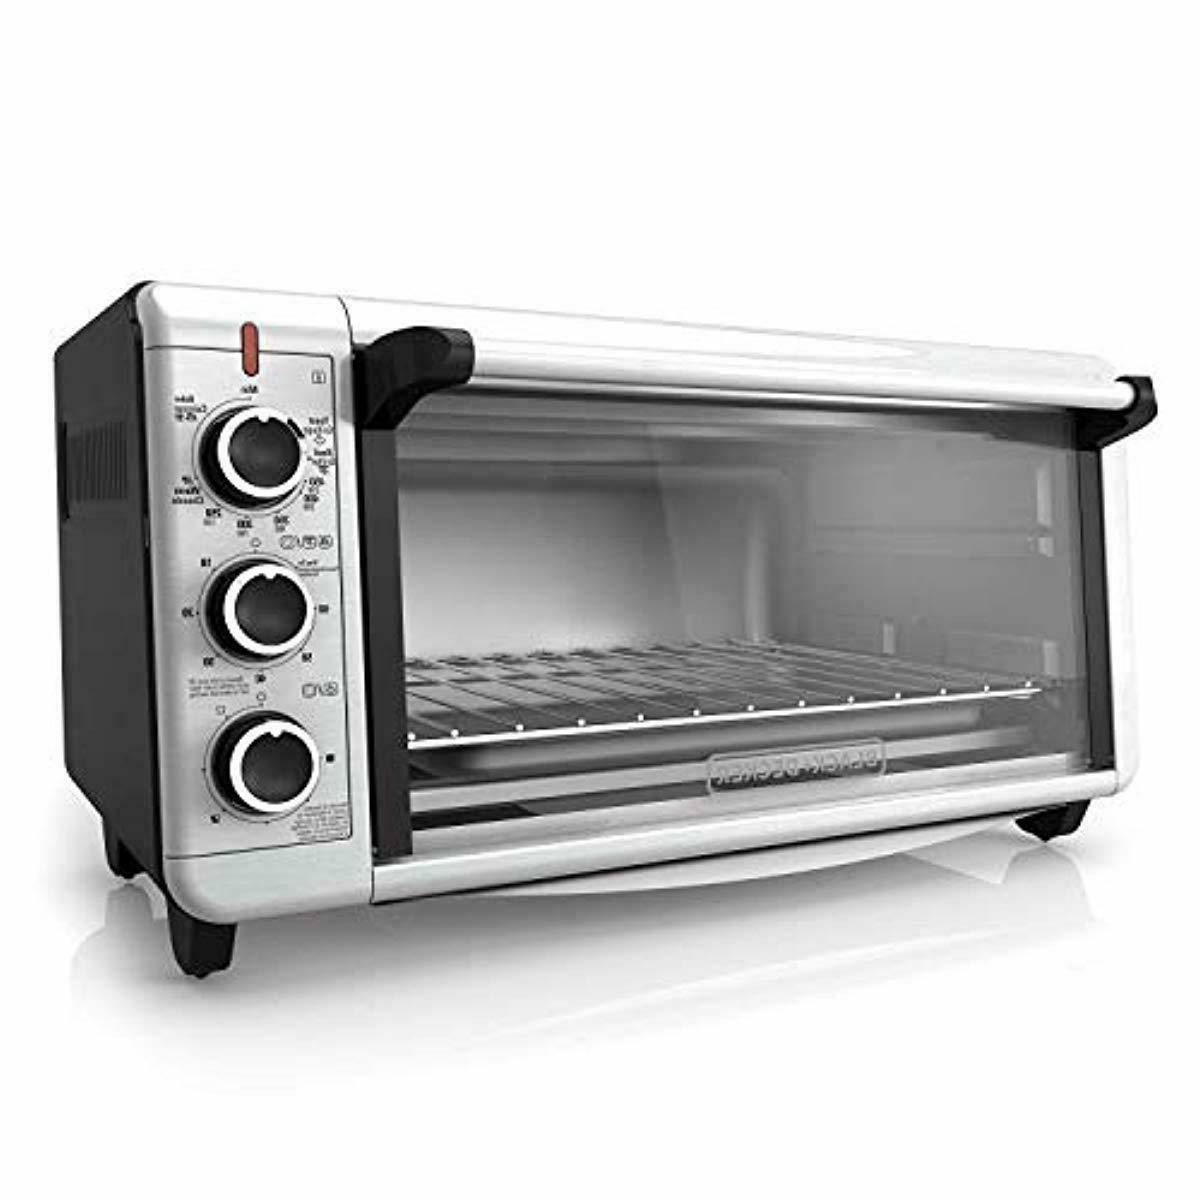 Wide Oven, I